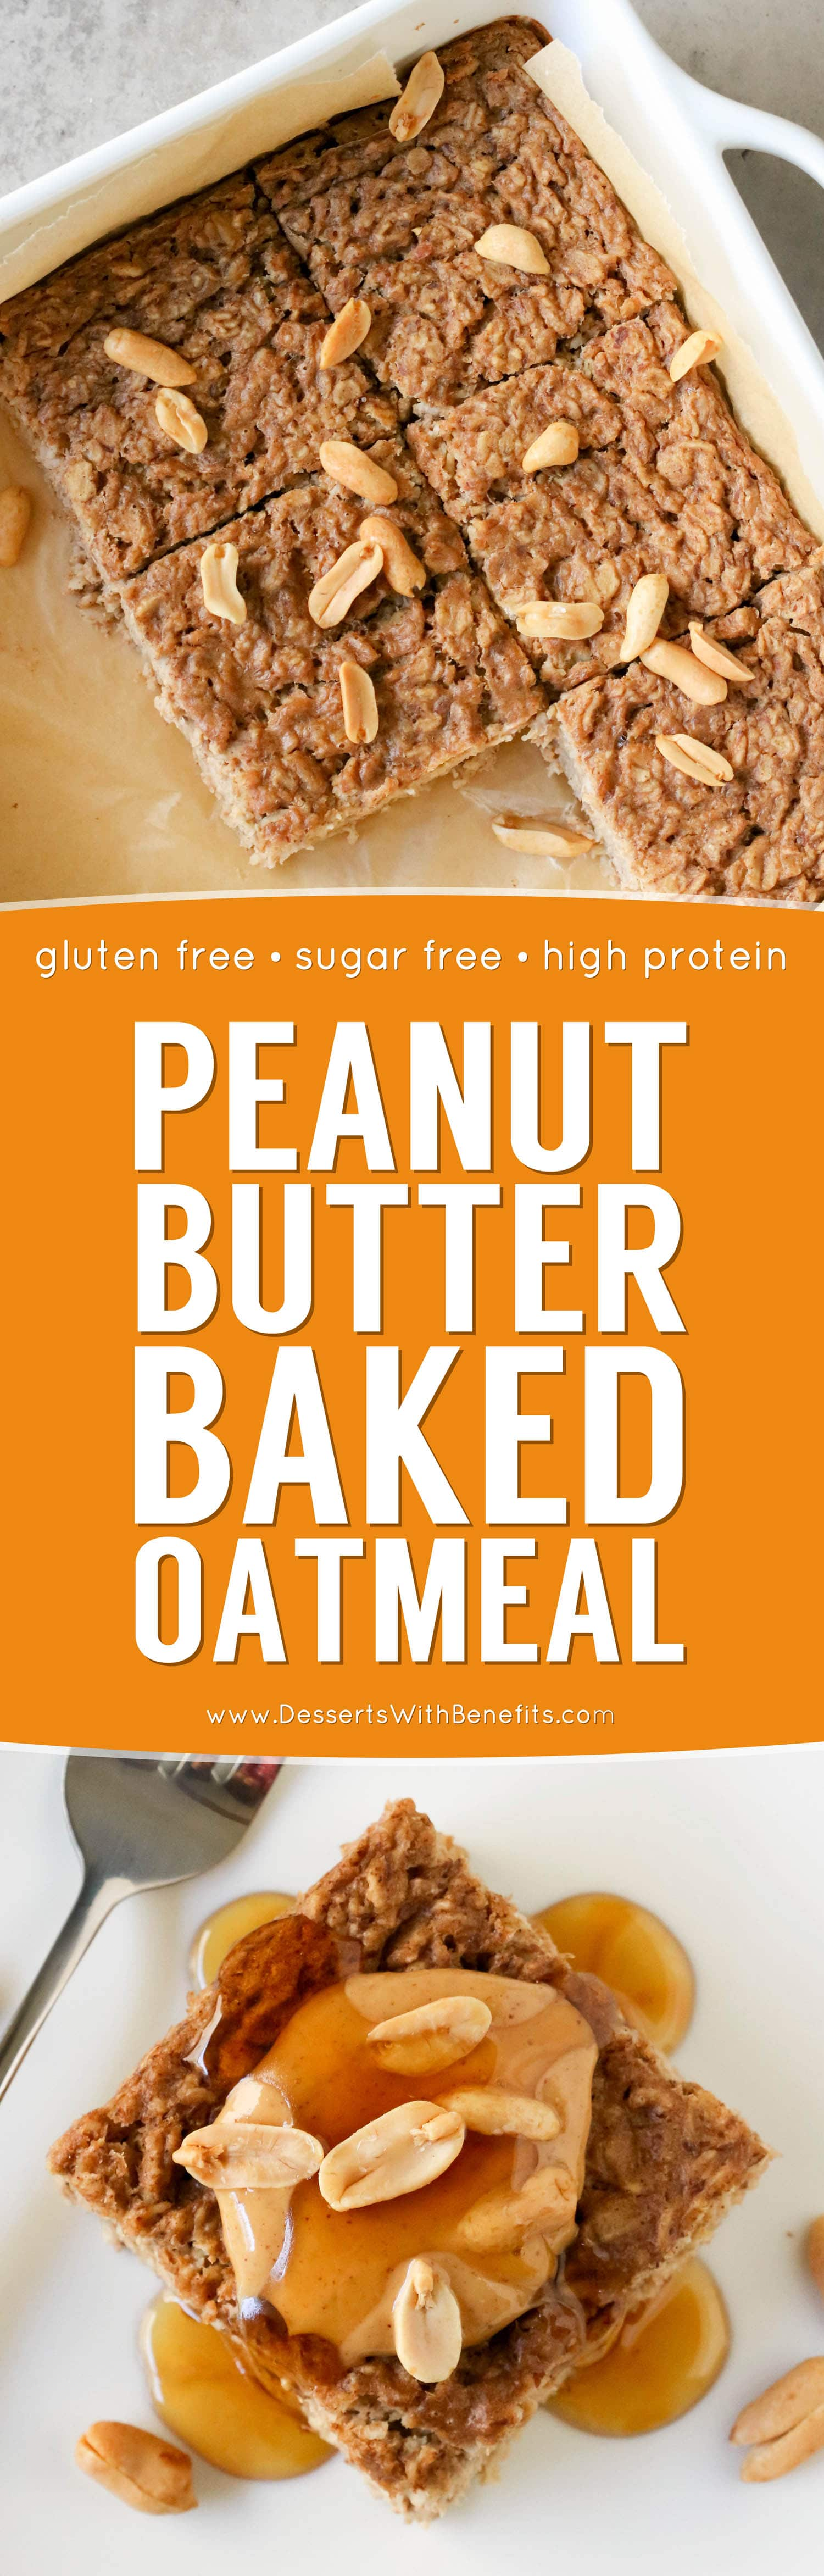 This healthy Peanut Butter Baked Oatmeal is soft and light, yet packed with protein, fiber, and healthy fats, and none of the added sugar! Plus, it's sugar free, gluten free, dairy free, and vegan too!